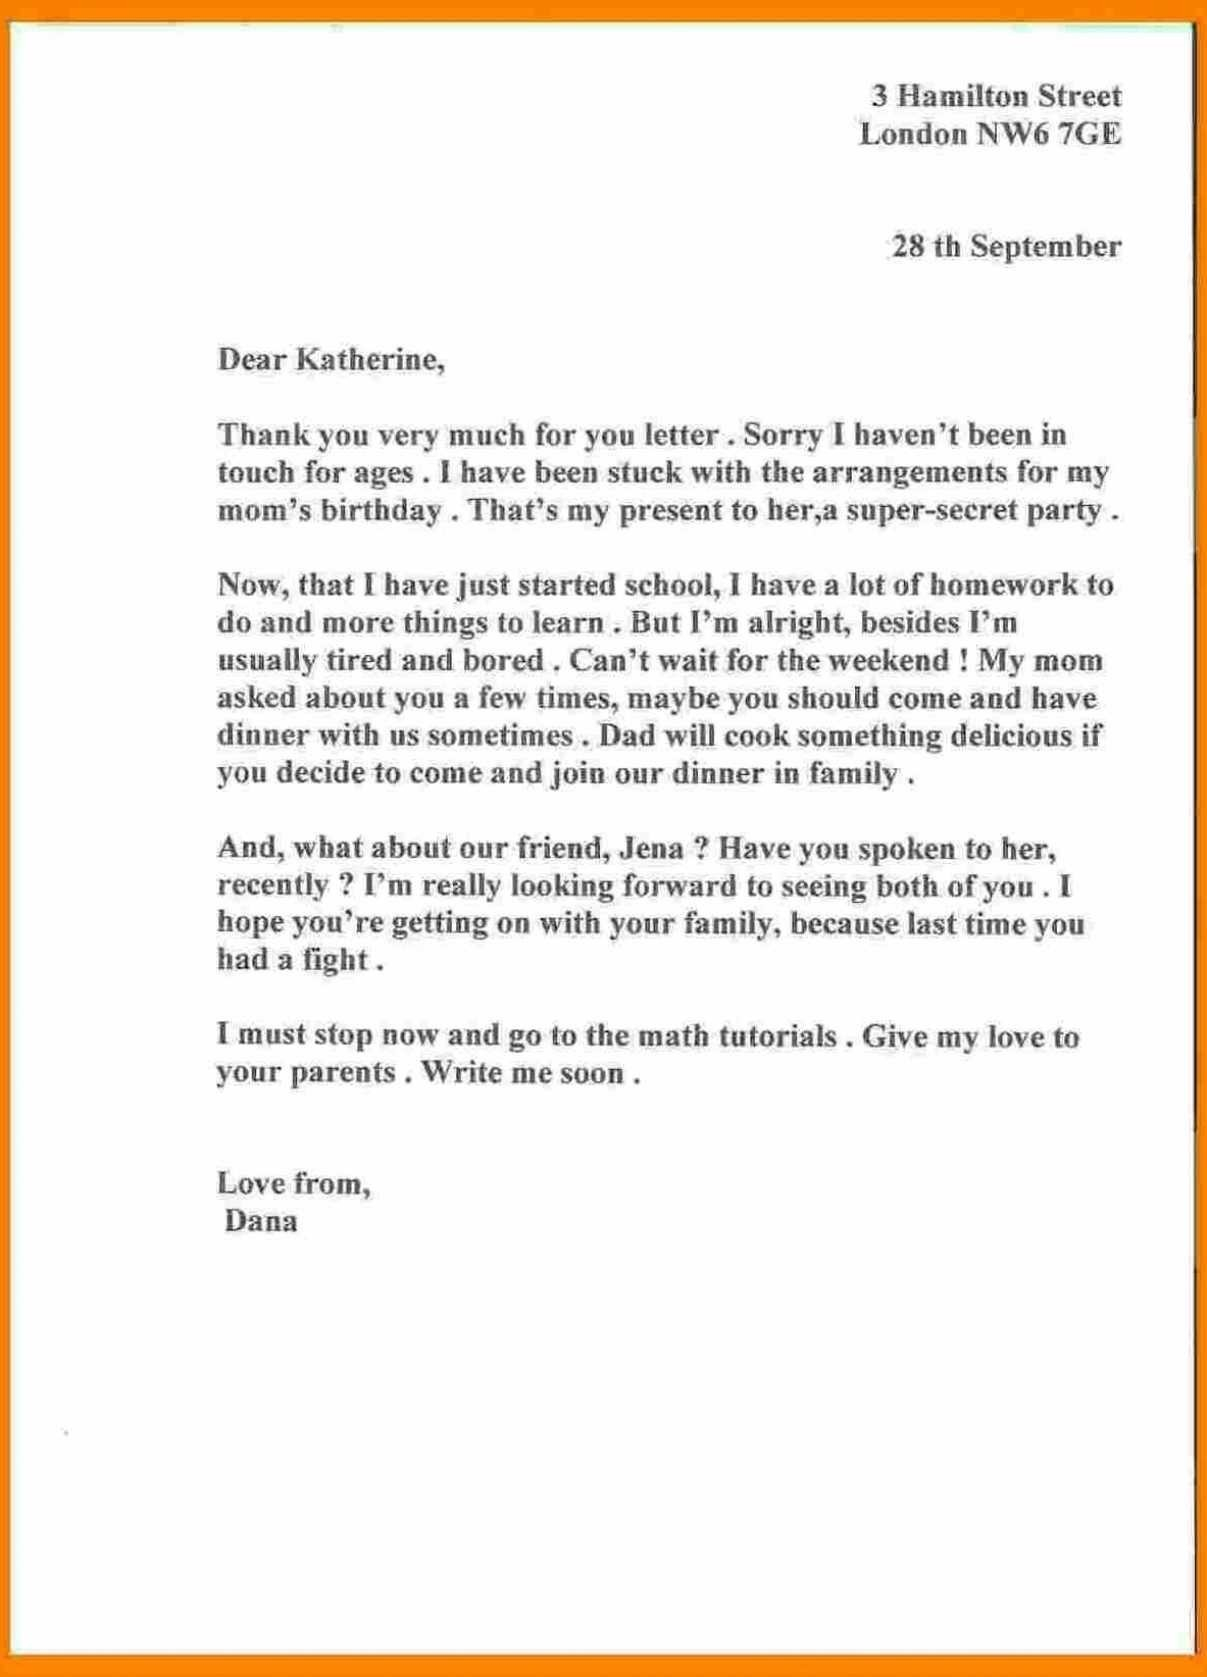 Love Letter Template Download - Simple Love Letter format Save format Love Letter In Marathi Save